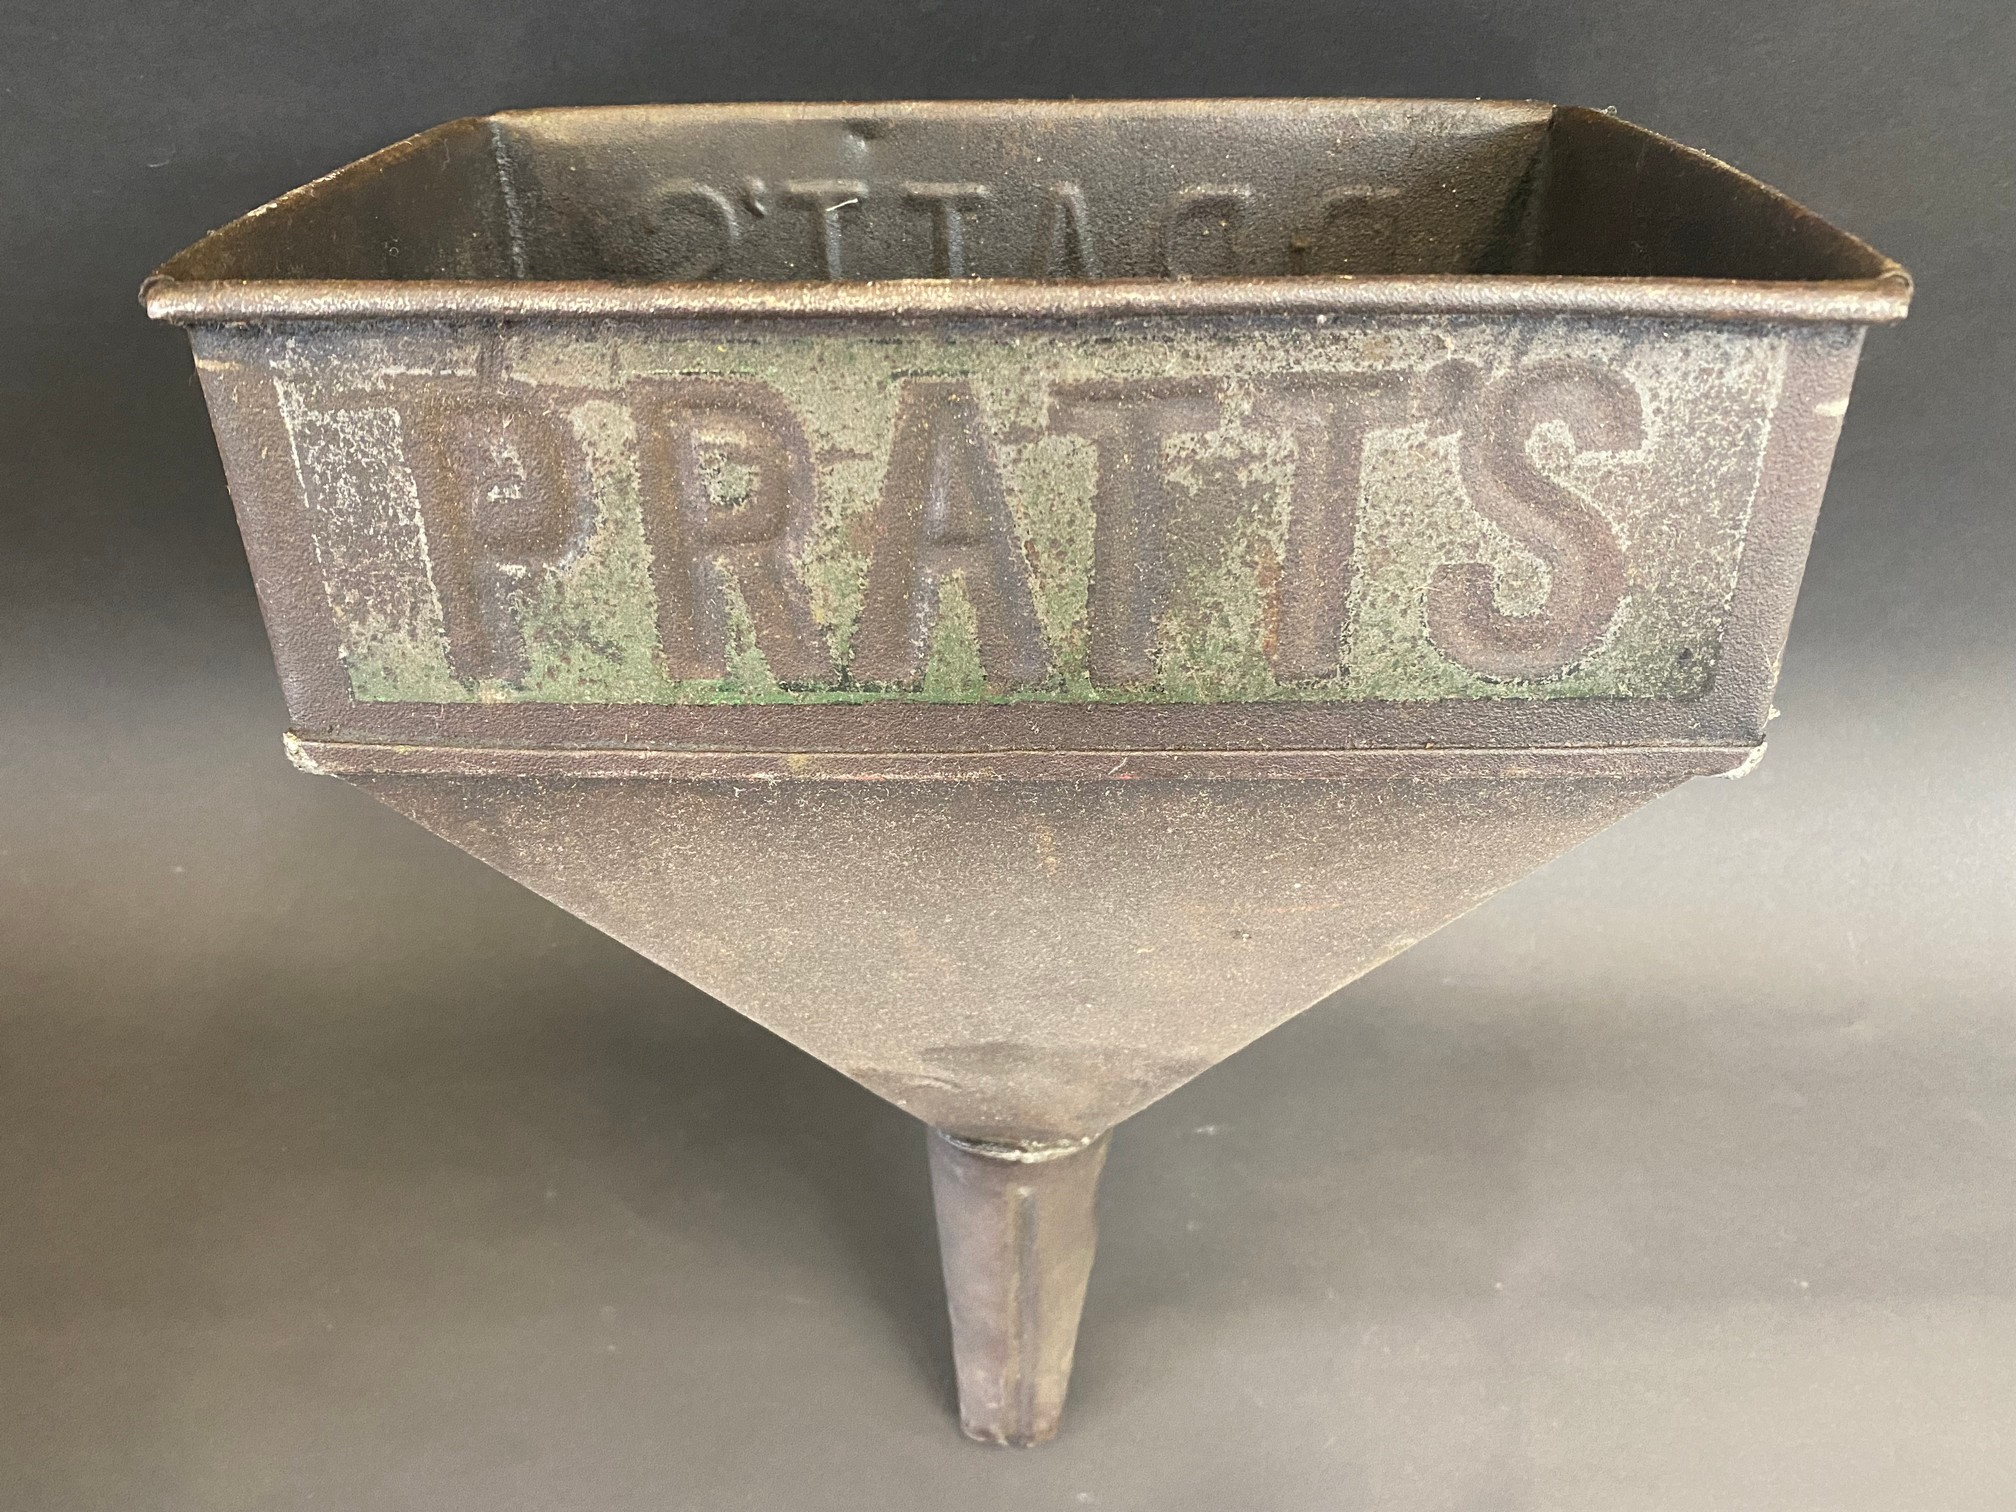 A Pratts rectangular funnel with embossed lettering and traces of original green paint. - Image 3 of 4